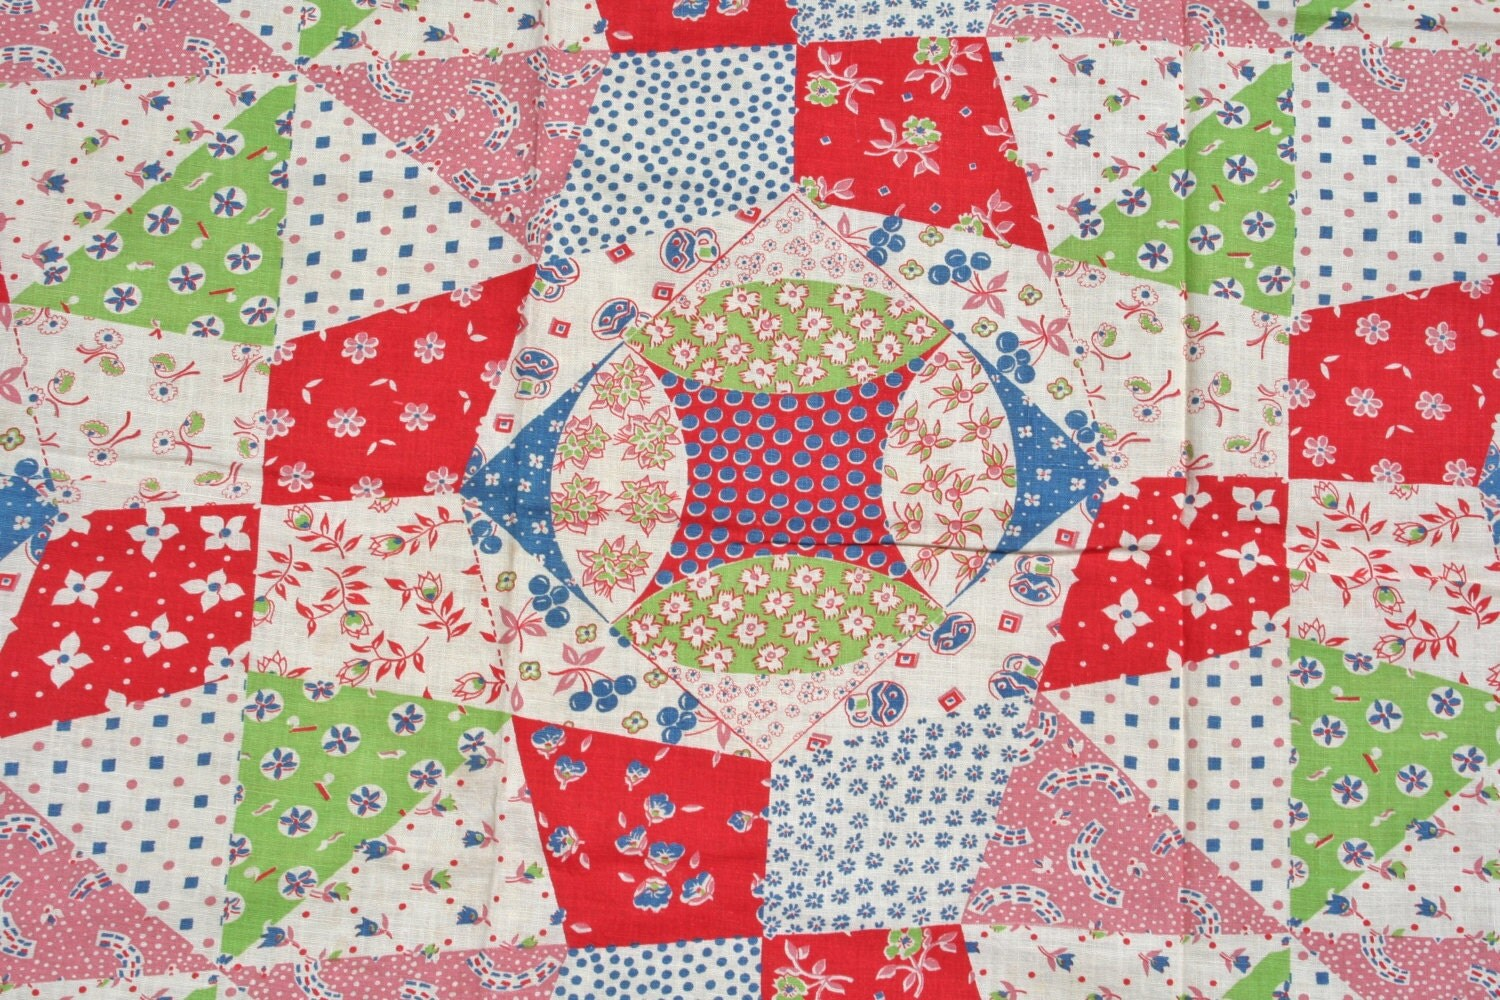 Flour Sack Fabric By The Yard Vintage Feedsack Flour Sack Fabric Patchwork Quilt Novelty